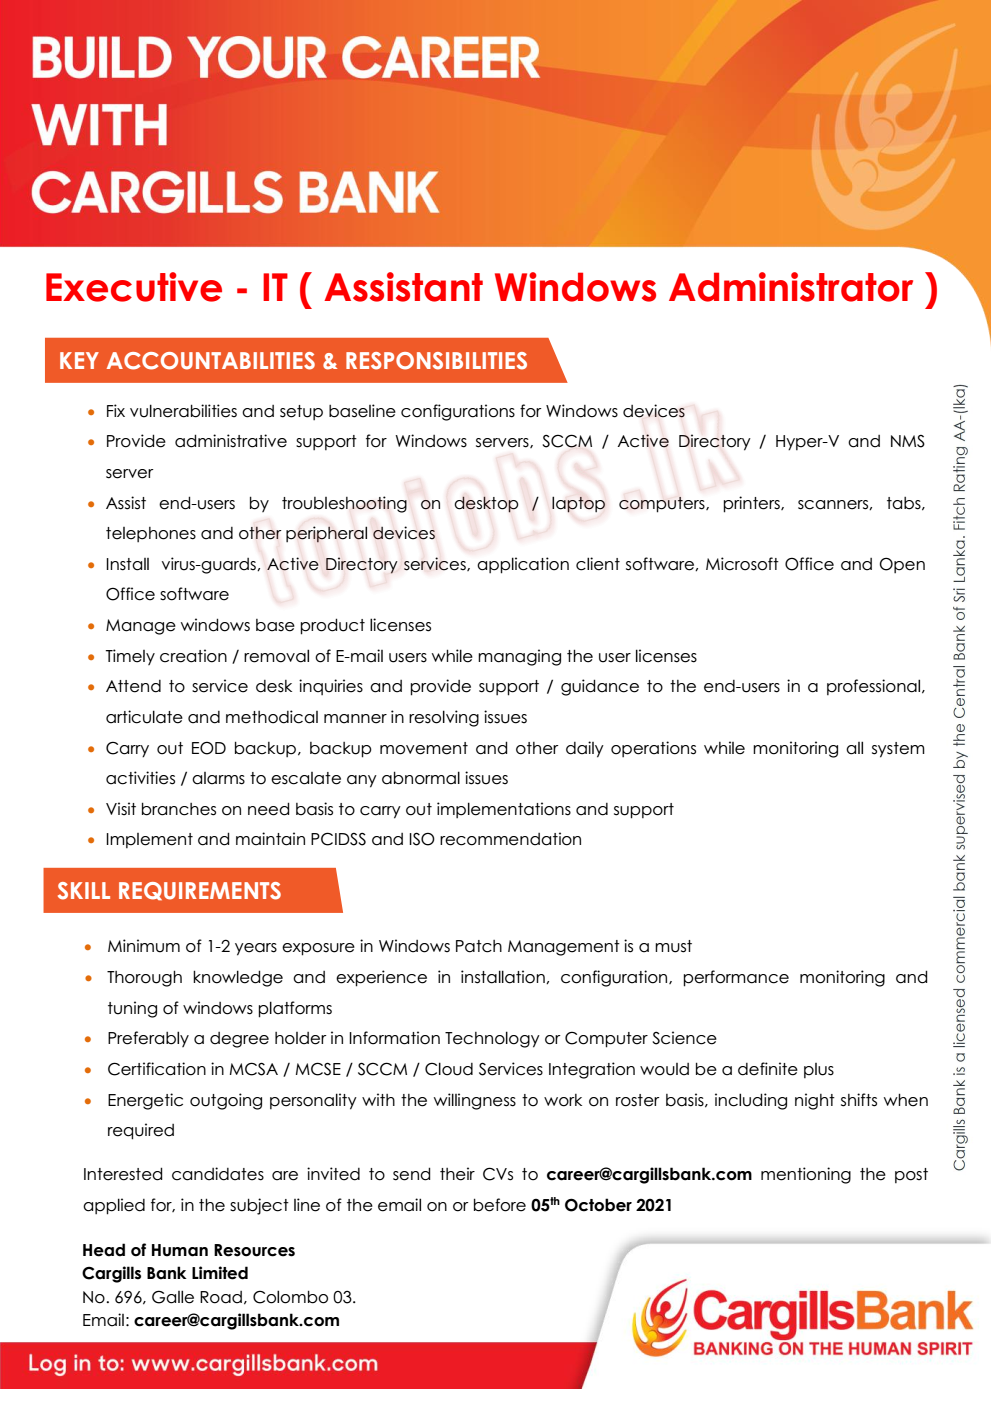 Executive - IT (Assistant Windows Administrator)